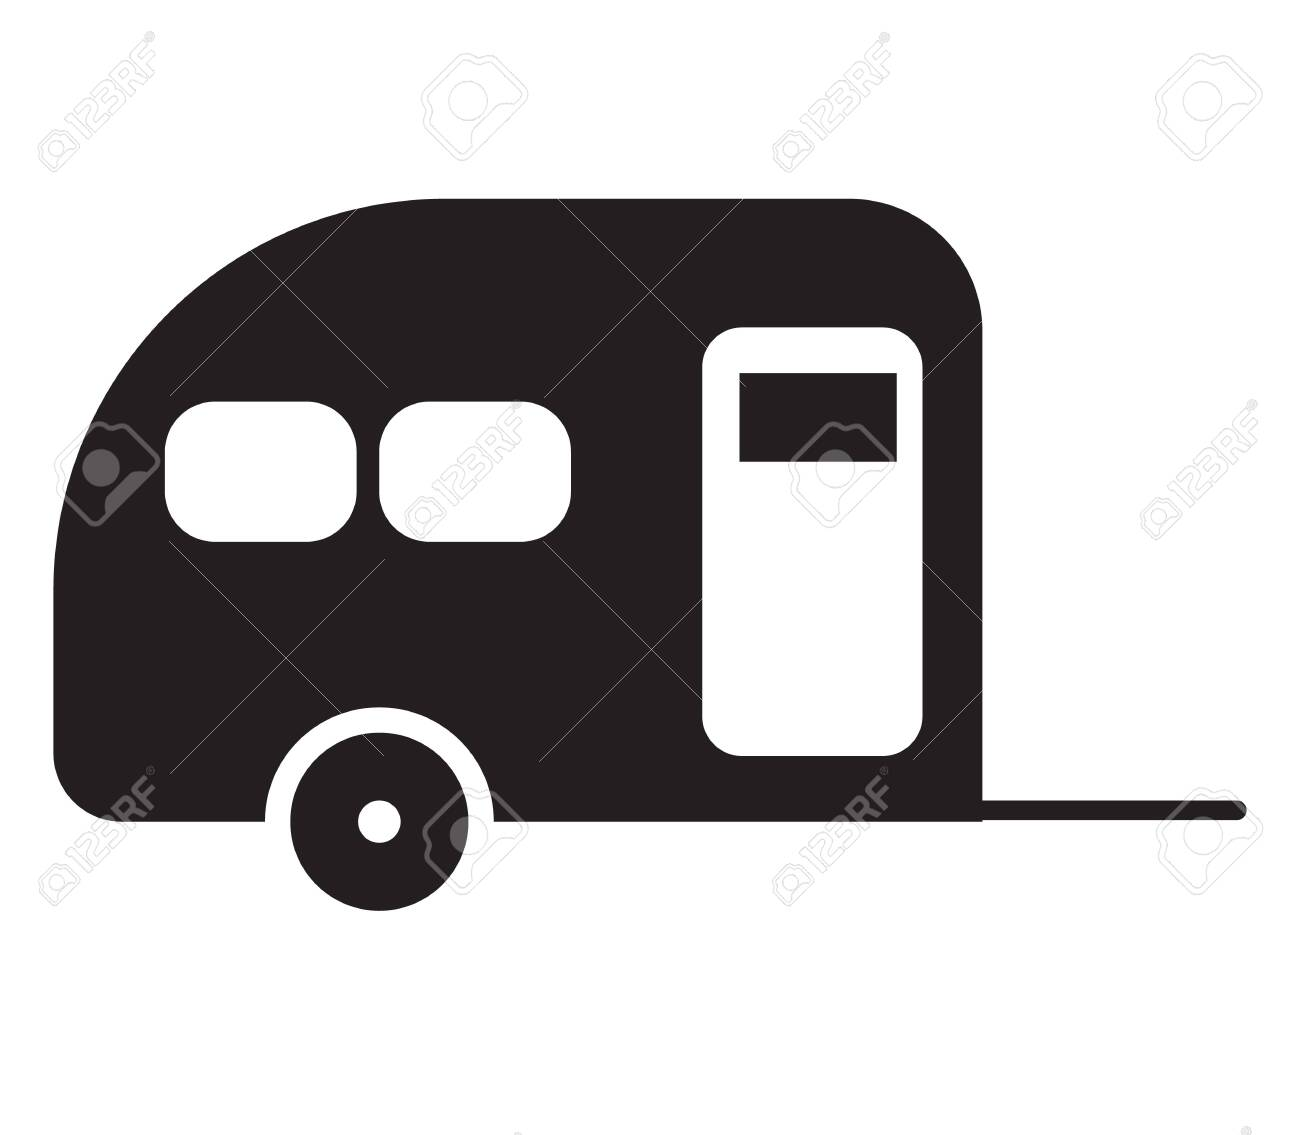 camping caravan icon on white background. flat style. camping car icon for your web site design, logo, app, UI. camping car symbol. camping caravan sign. - 132745830